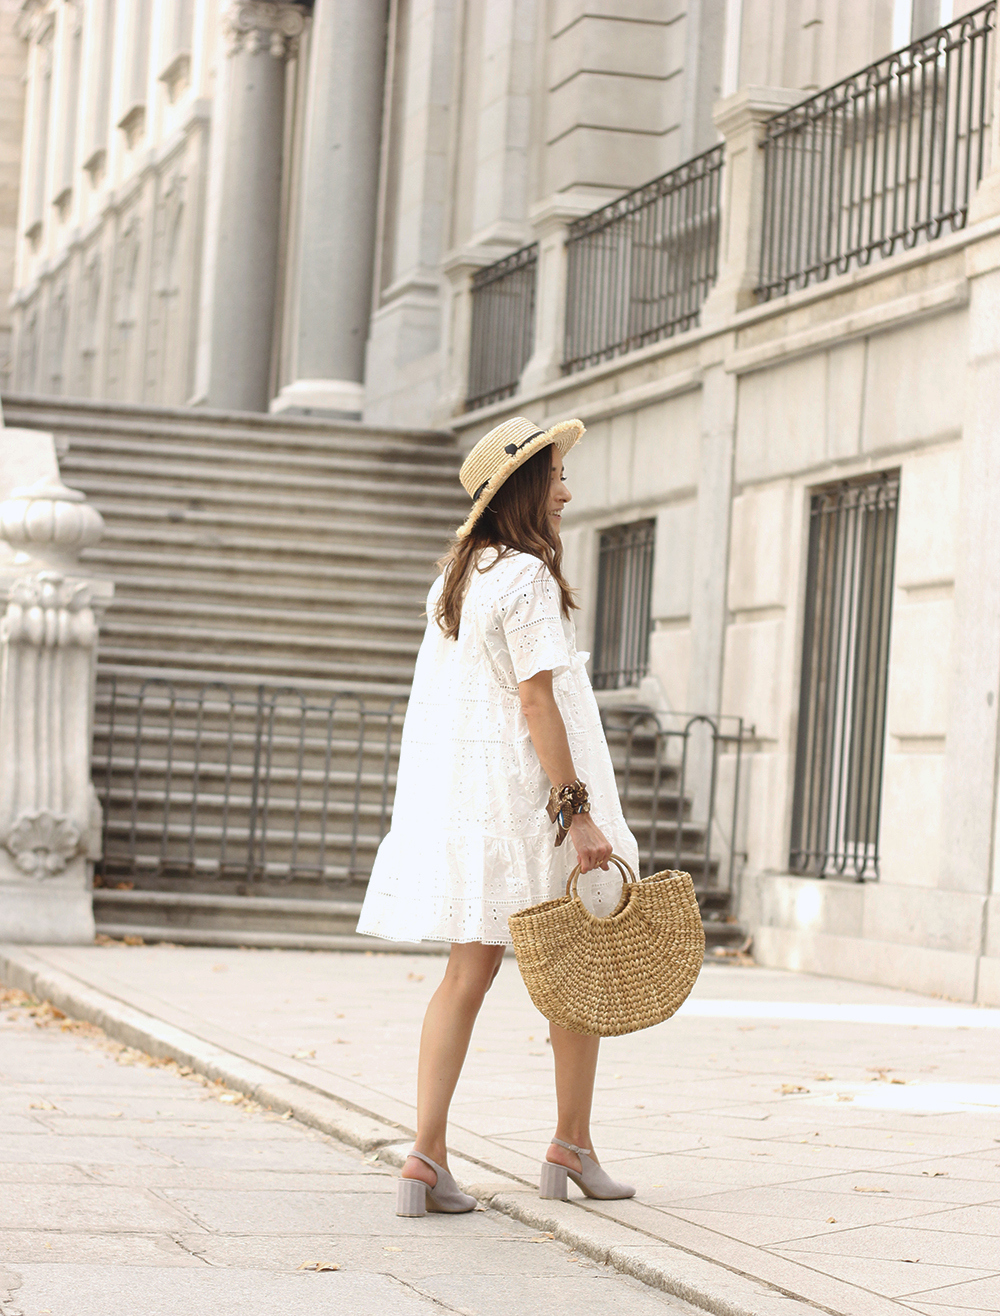 White summer dress canotier street style outfit 20198